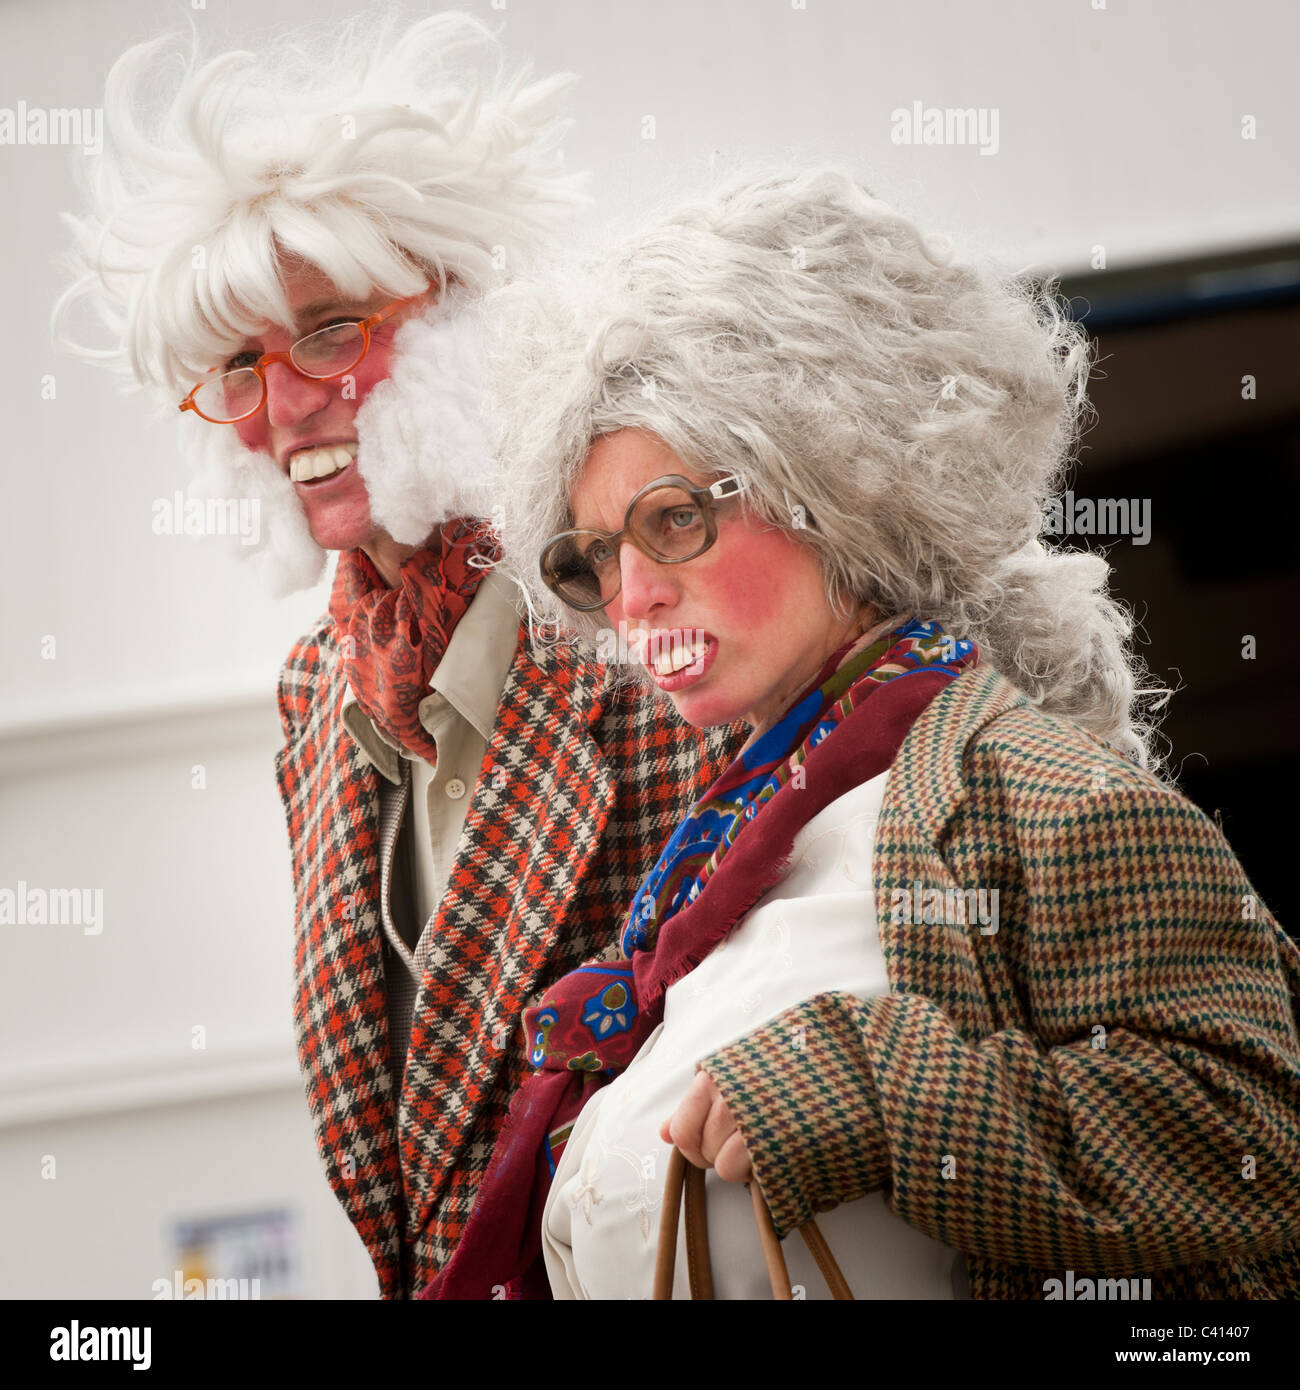 Street entertainers 'lord and lady Flangeworthy-Smythe' aristocratic caricature characters on the promenade - Stock Image